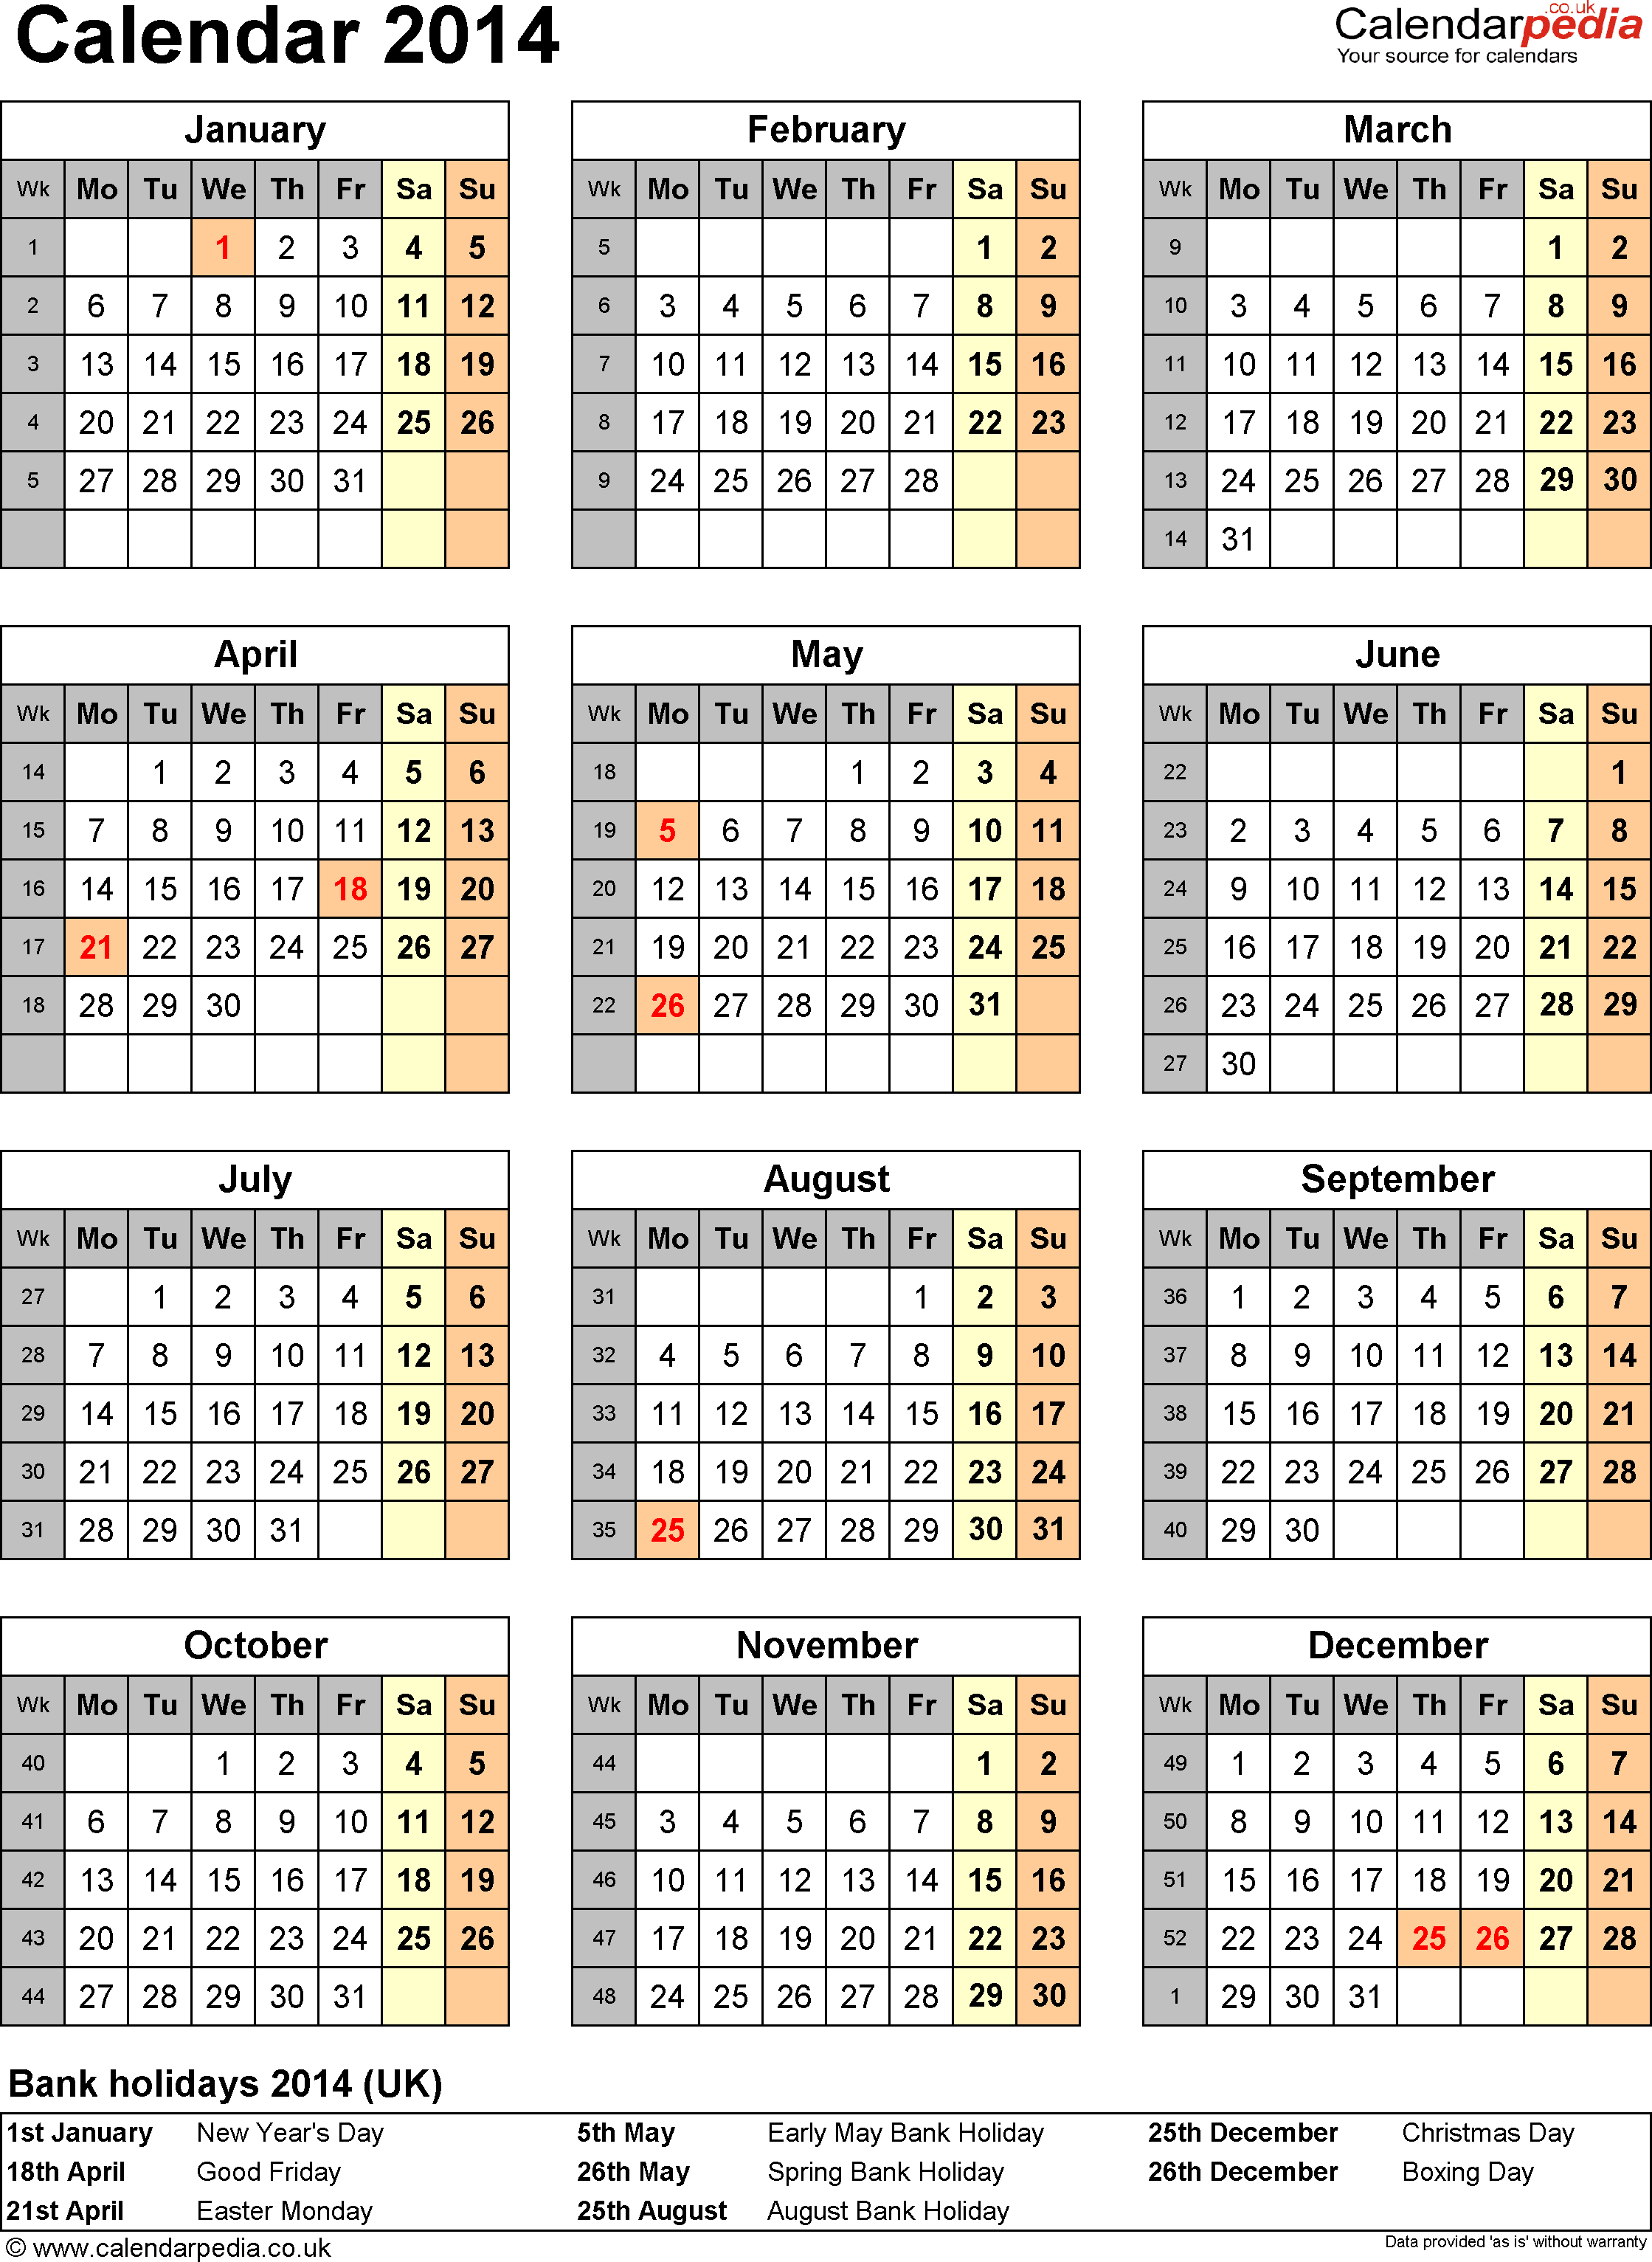 Download Template 14: Yearly calendar 2014 as Word template, portrait orientation, one A4 page